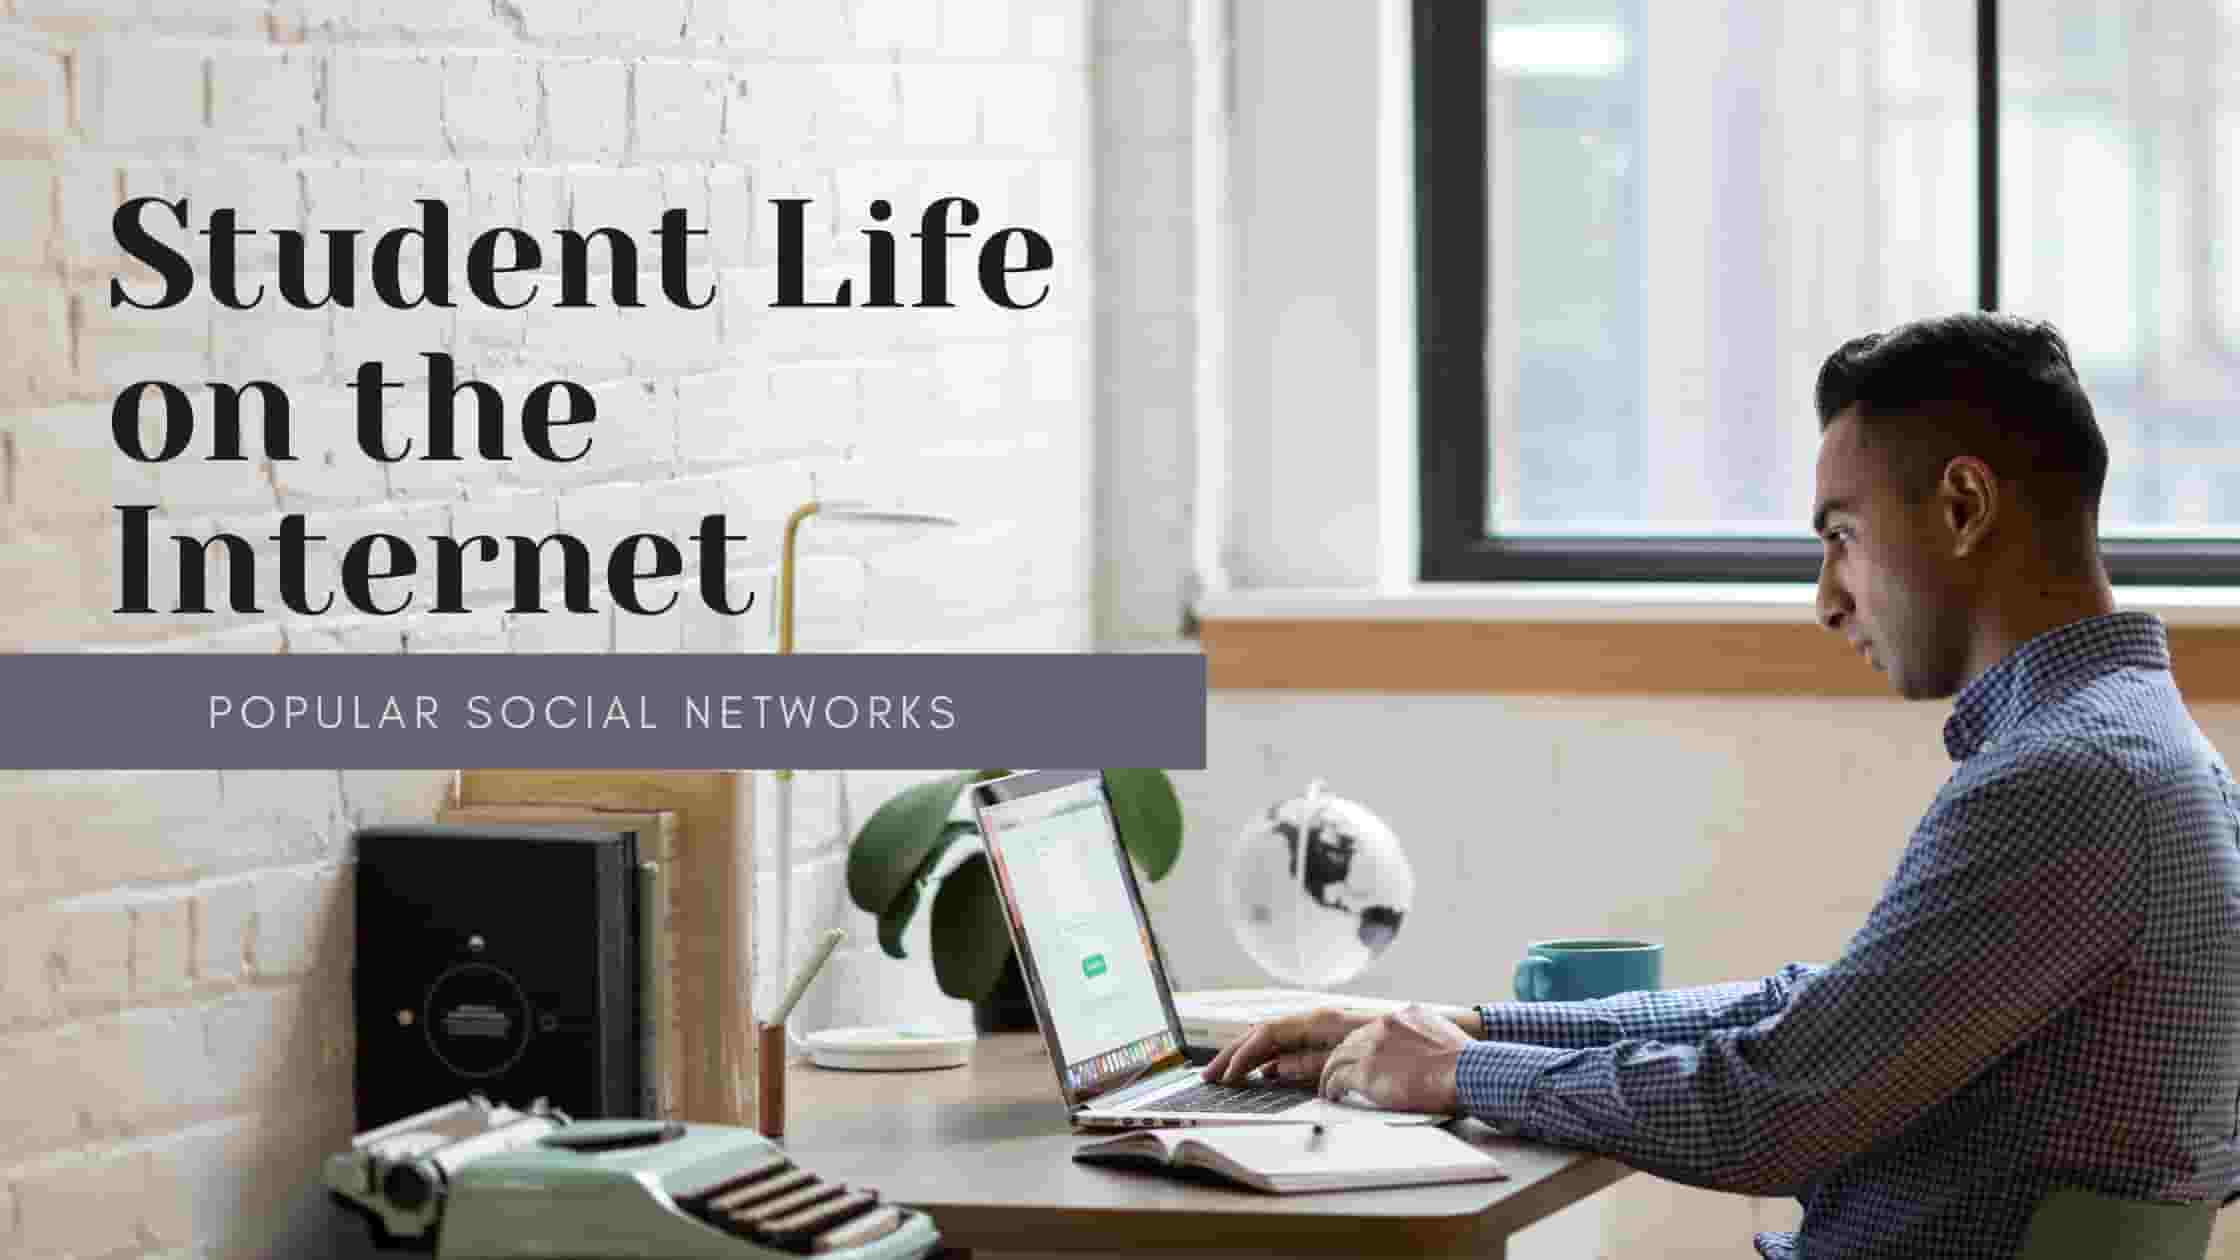 Student Life on the Internet